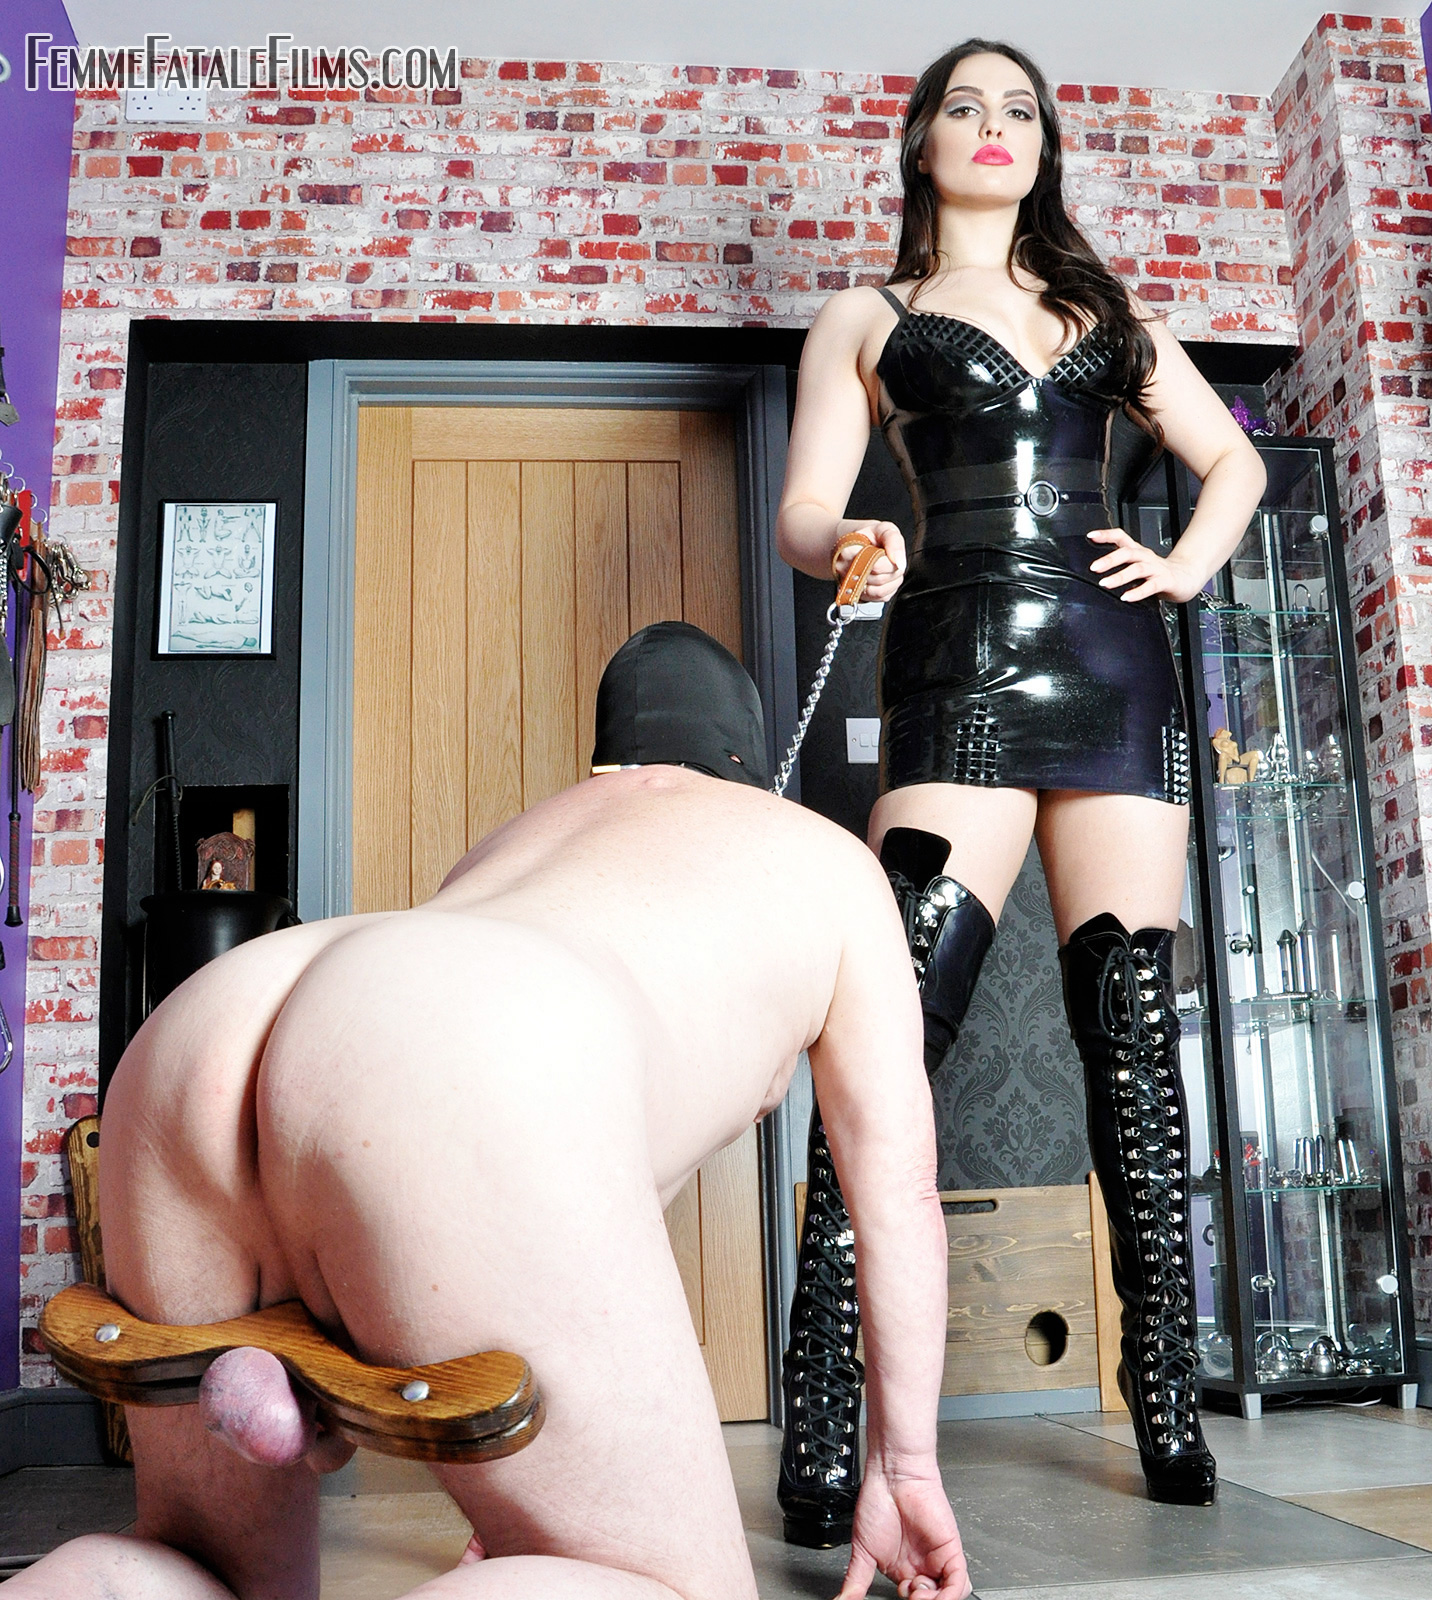 CBT Ball Stretching Swollen Testicles: Mistress Serena tortures a slave's cock and balls by painfully stretching them and making him suffer